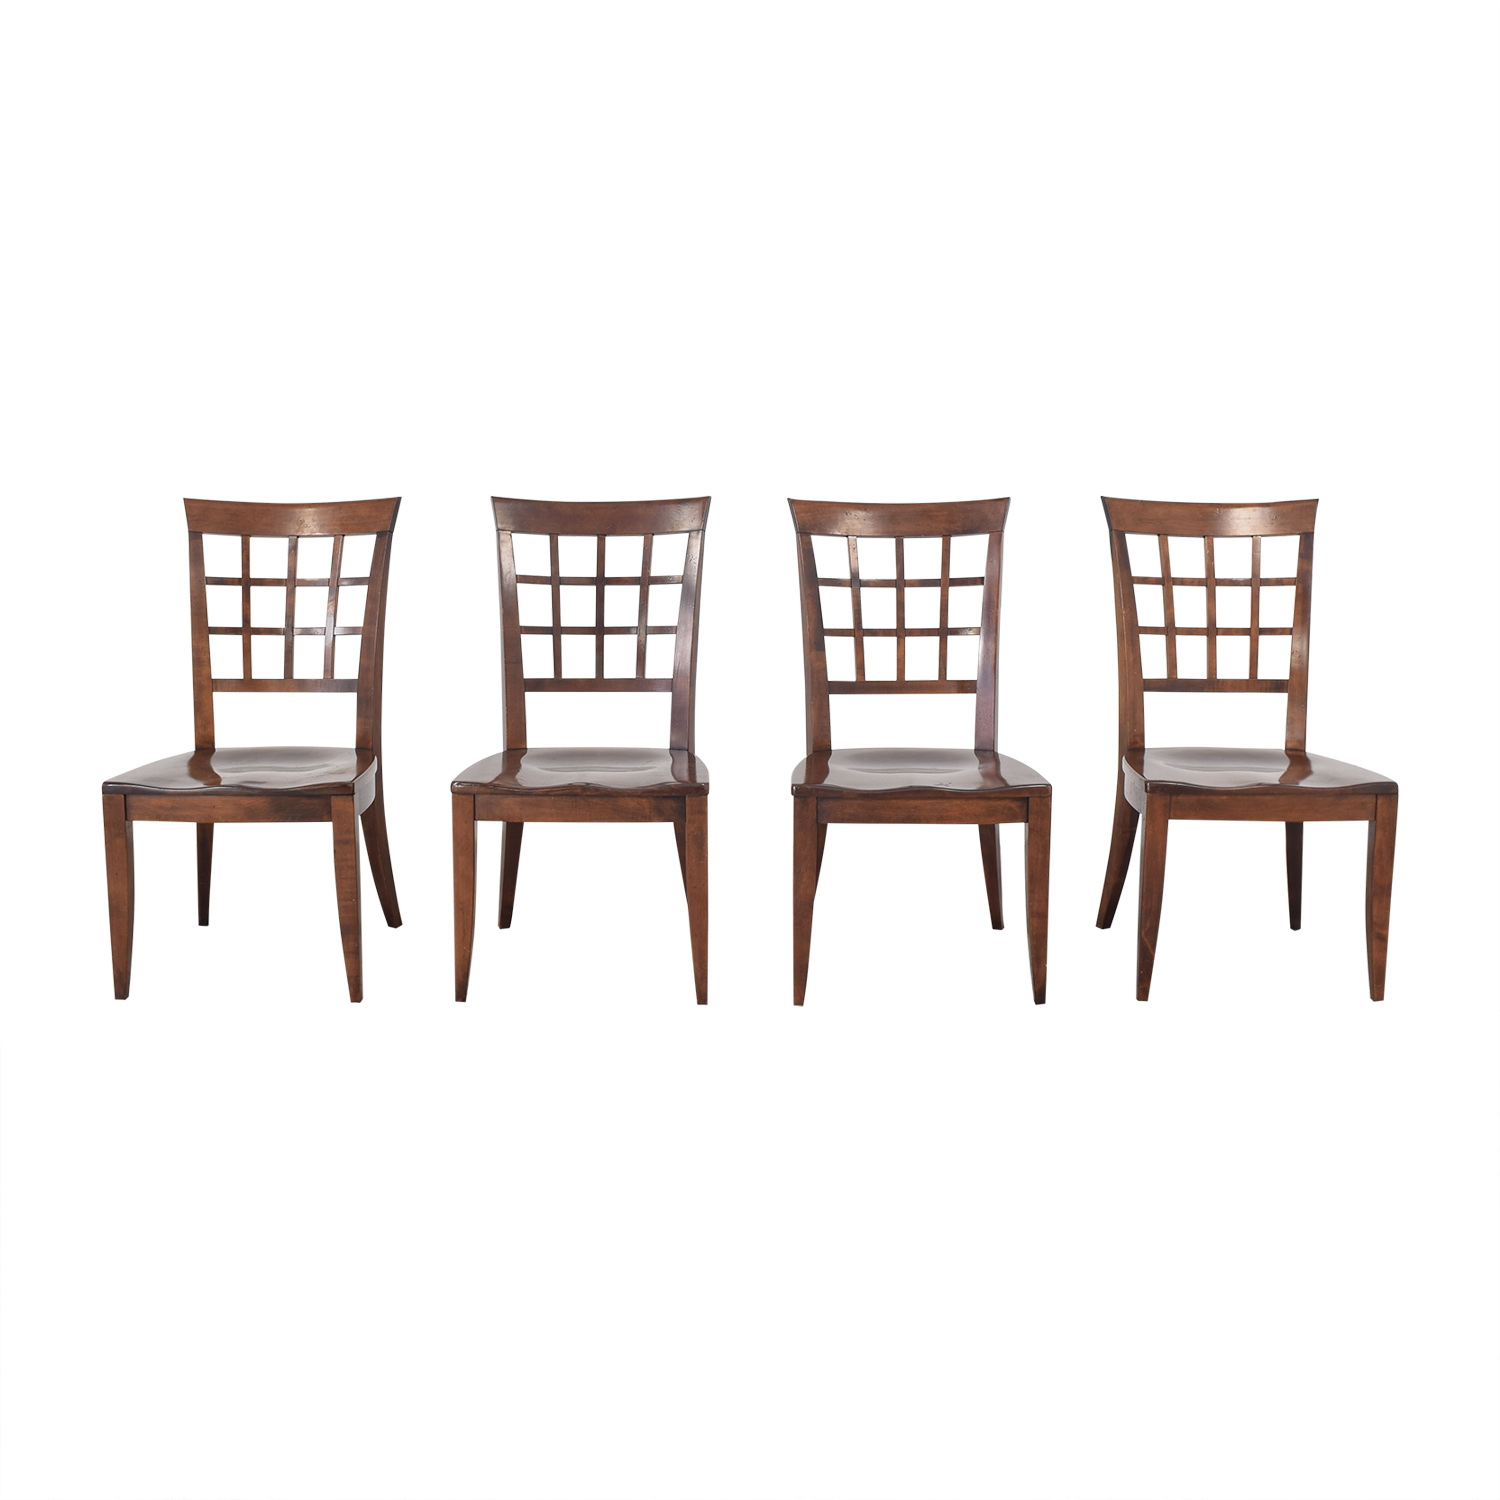 Stickley Furniture Stickley Furniture Cambridgeport Side Chairs for sale